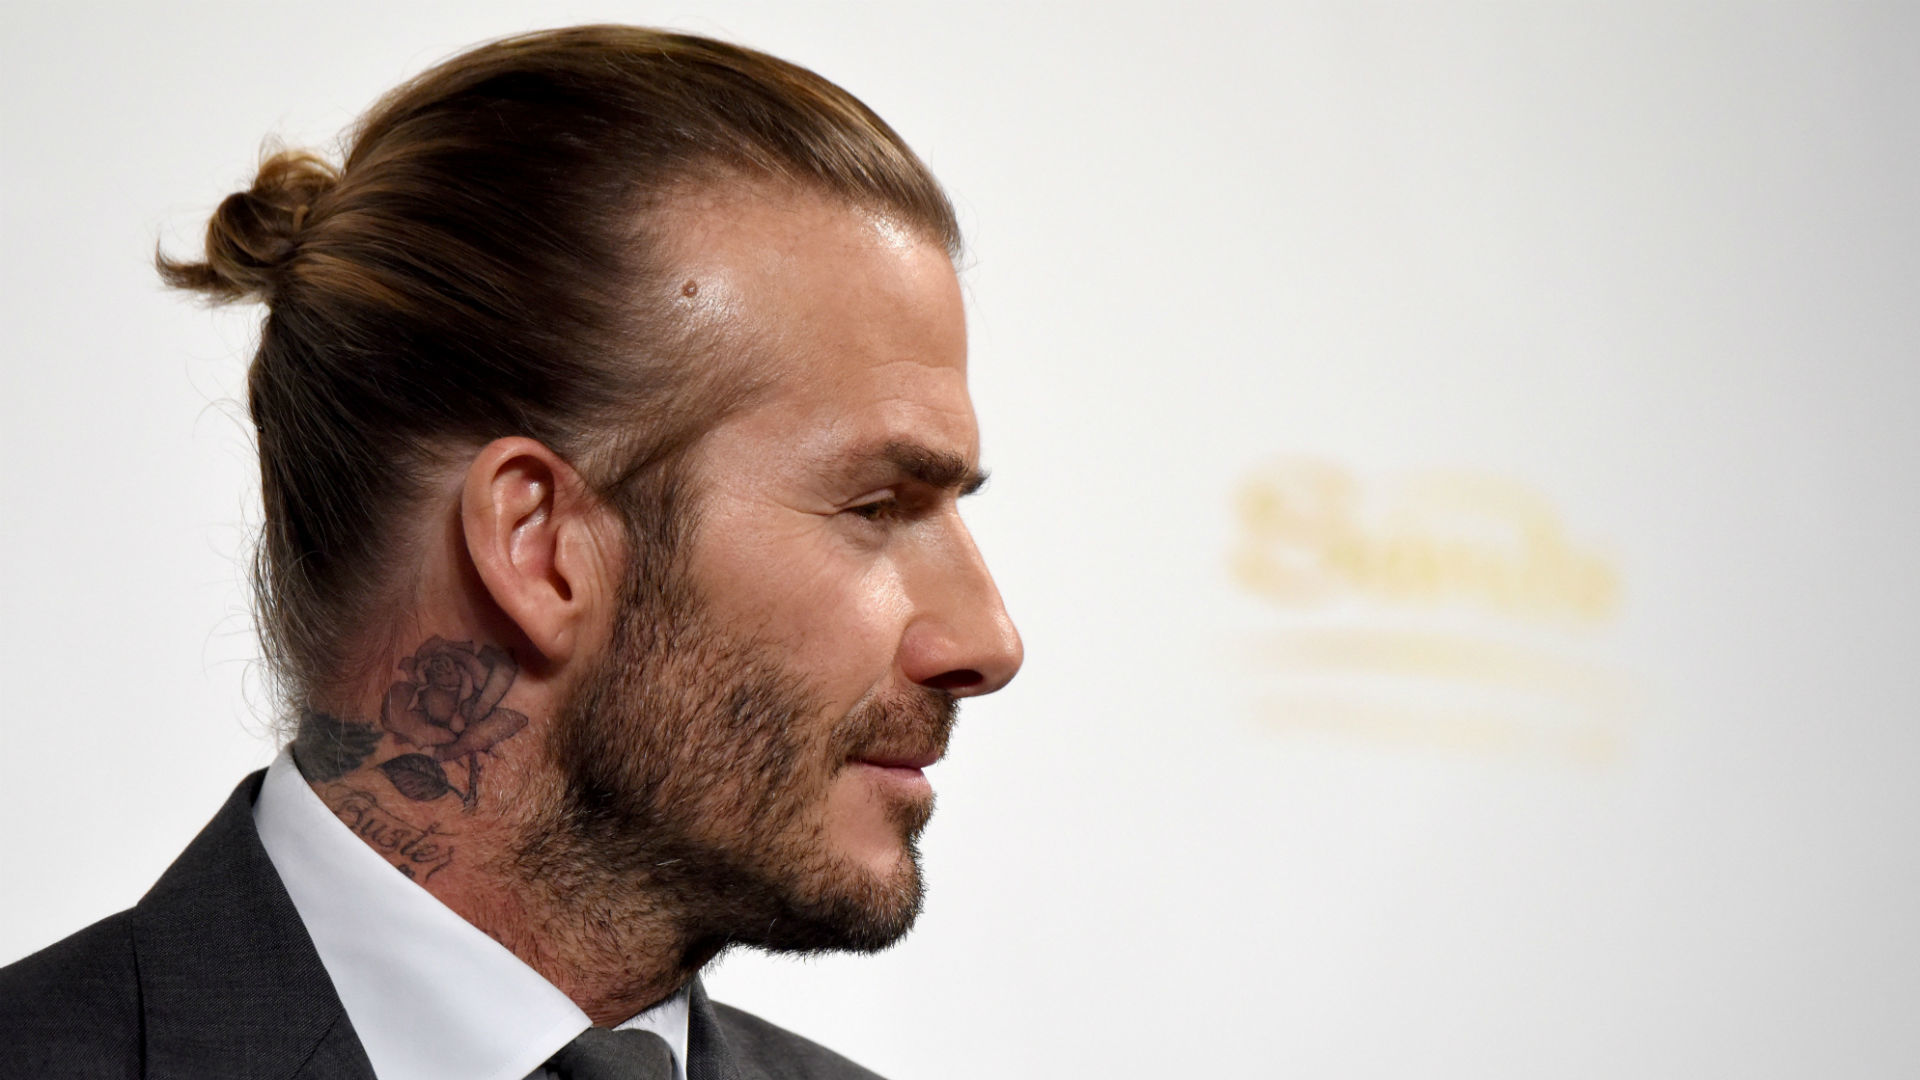 Styling a Widow's Peak Hair Line: Ideas, Tips, and Examples